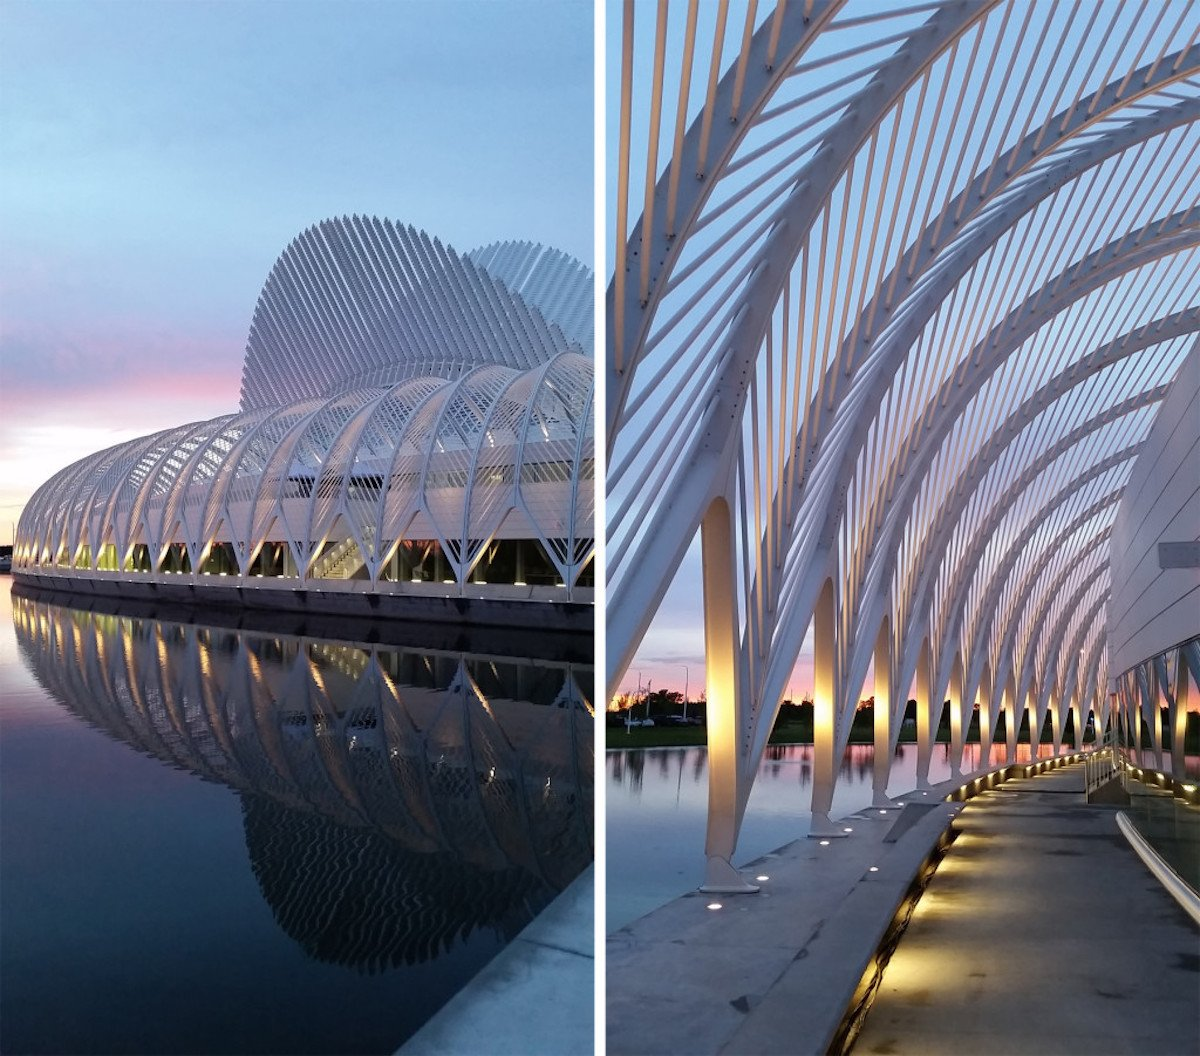 The Innovation, Science, and Technology building at Florida Polytechnic University in Lakeland.